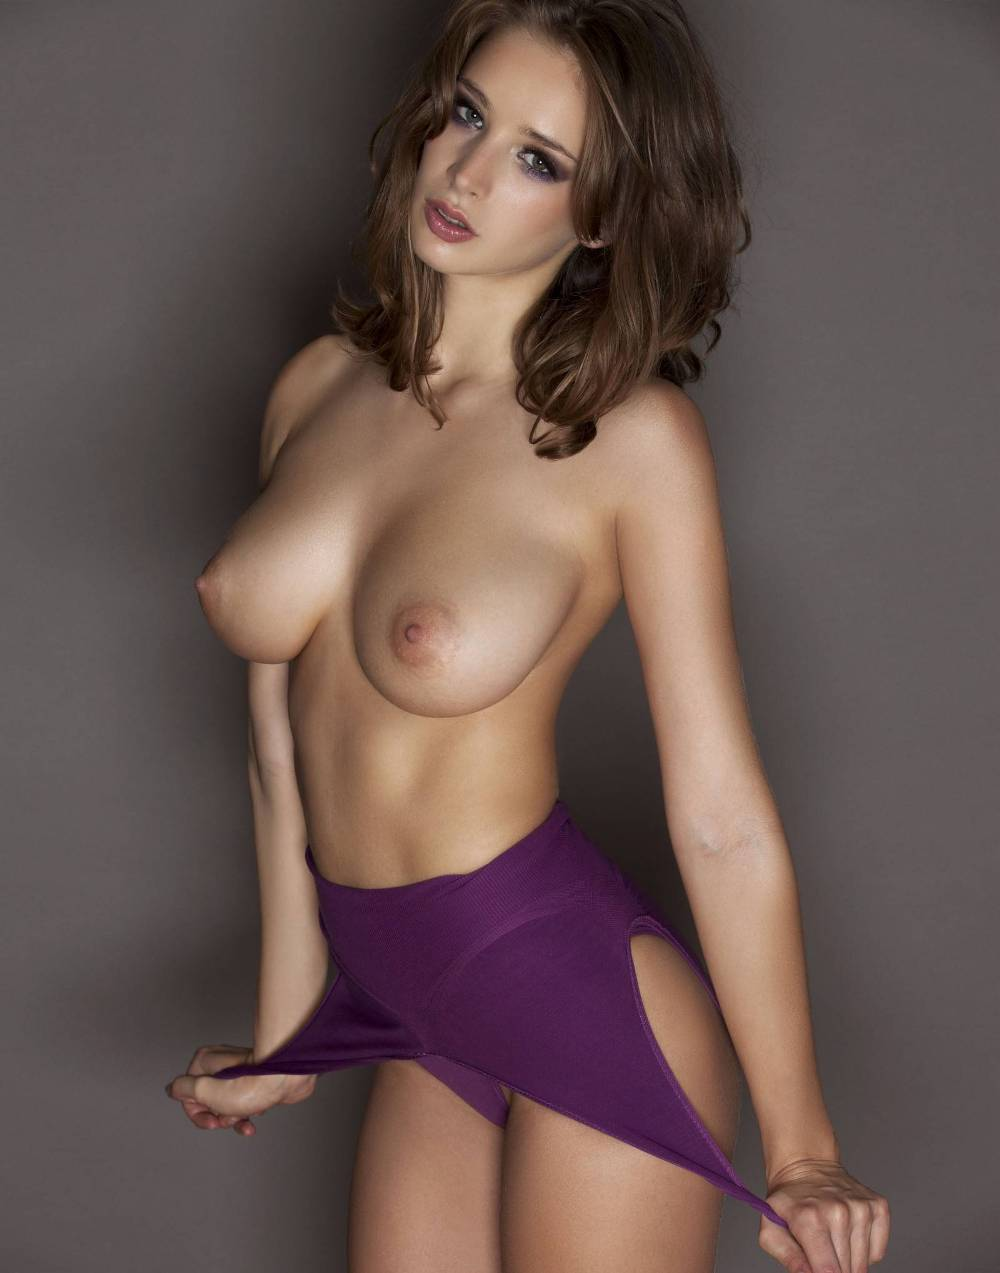 Emily shaw nude topless